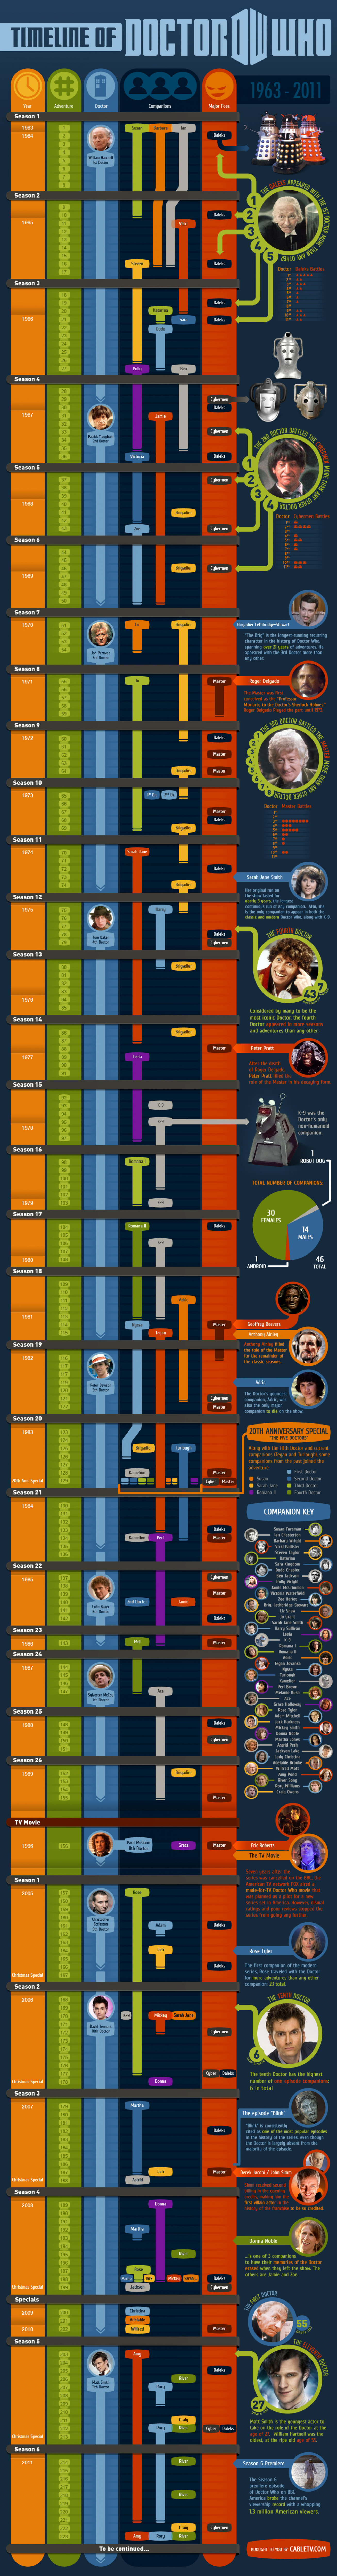 The Complete Timeline Of Doctor Who Infographic